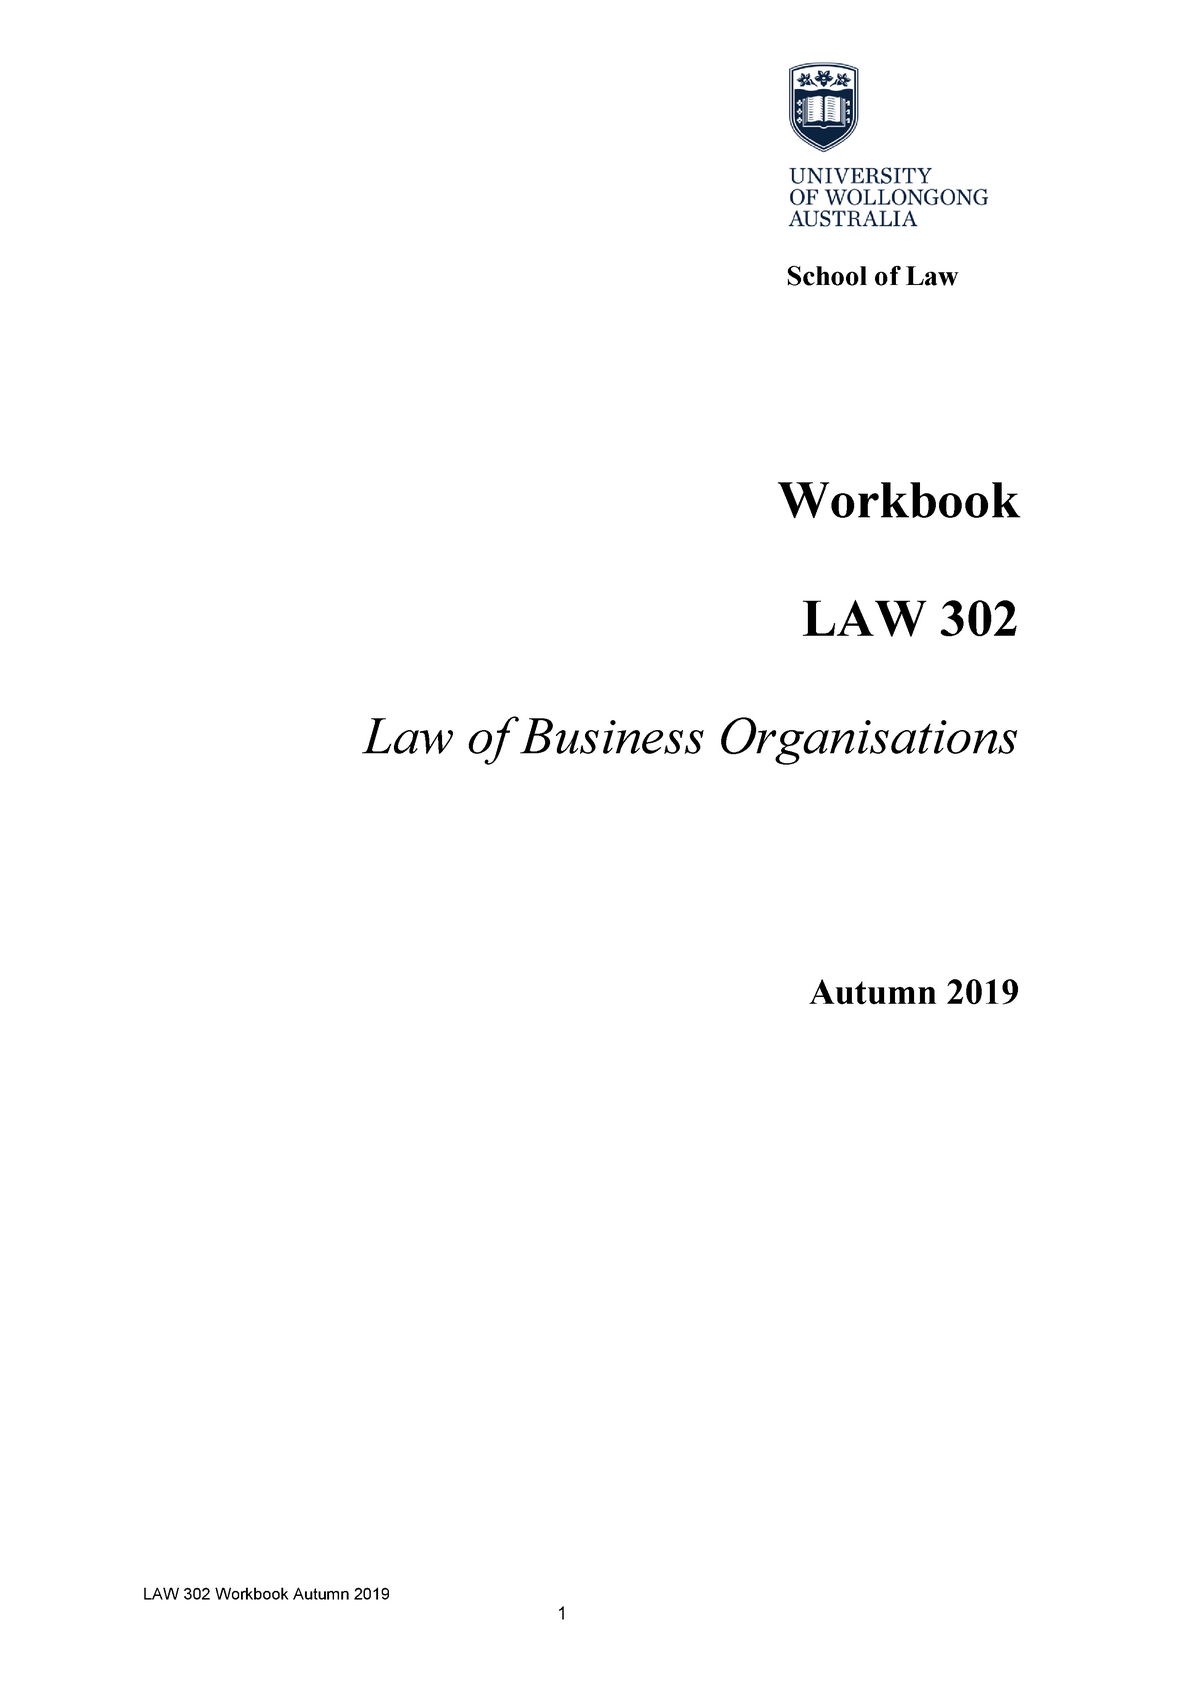 2019 Workbook LAW 302 - Summary Law of Business